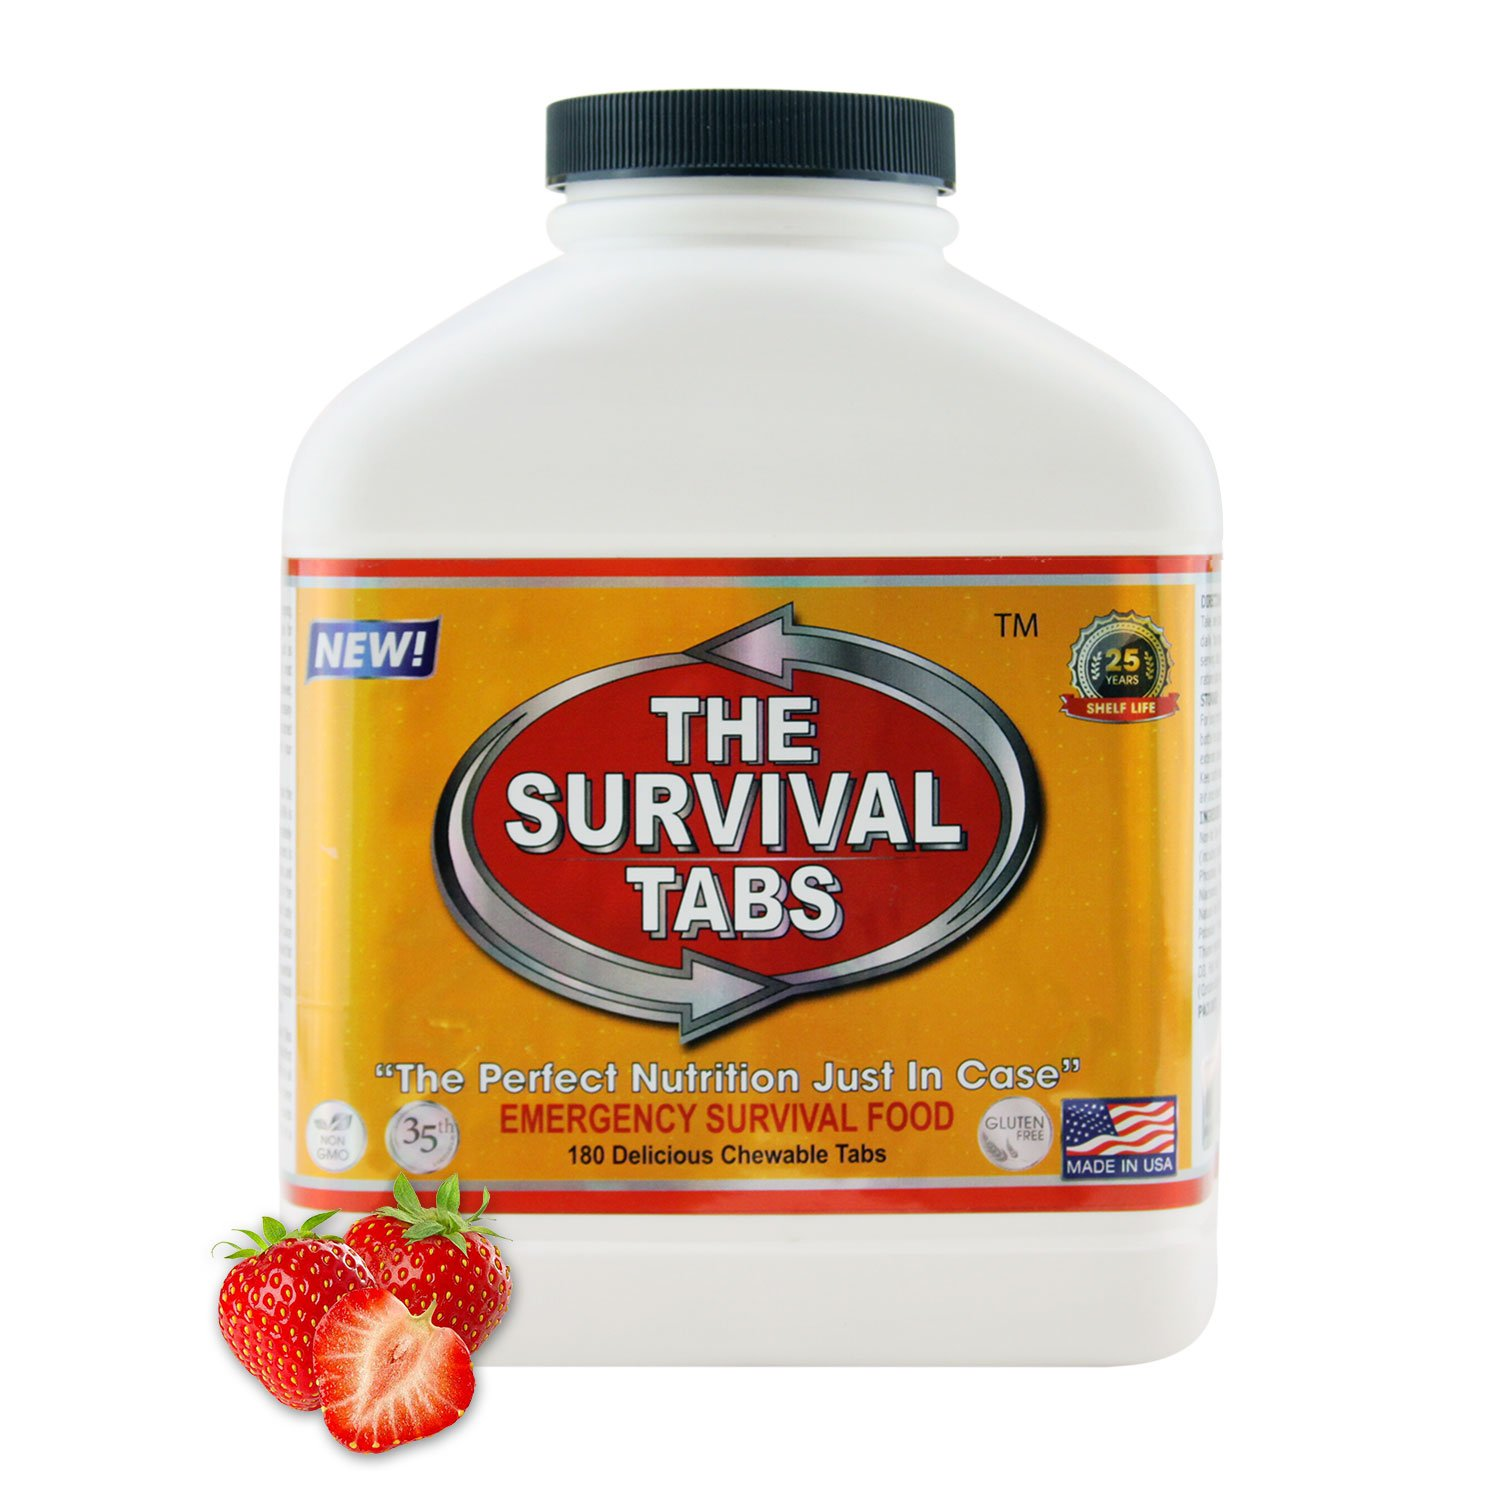 Preparing Your Earthquake Survival Kit - 15 Days Supply - Strawberry